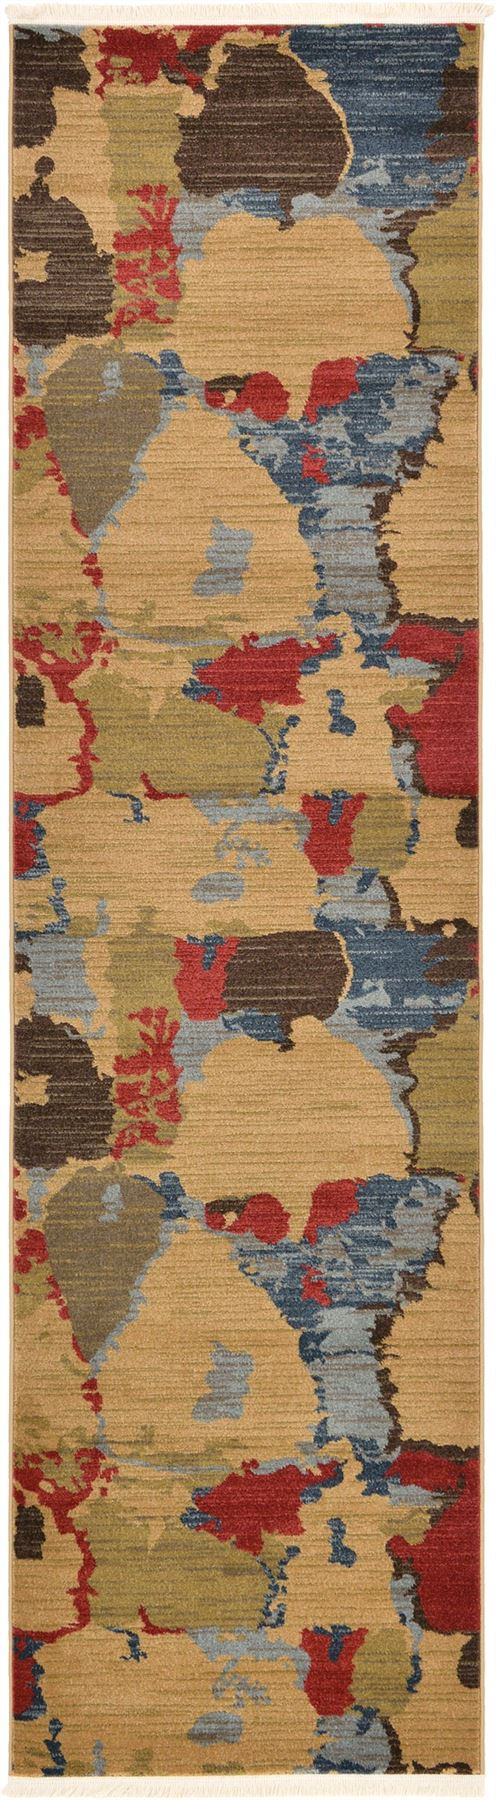 colorful area rugs modern multi color style area rug contemporary design 12630